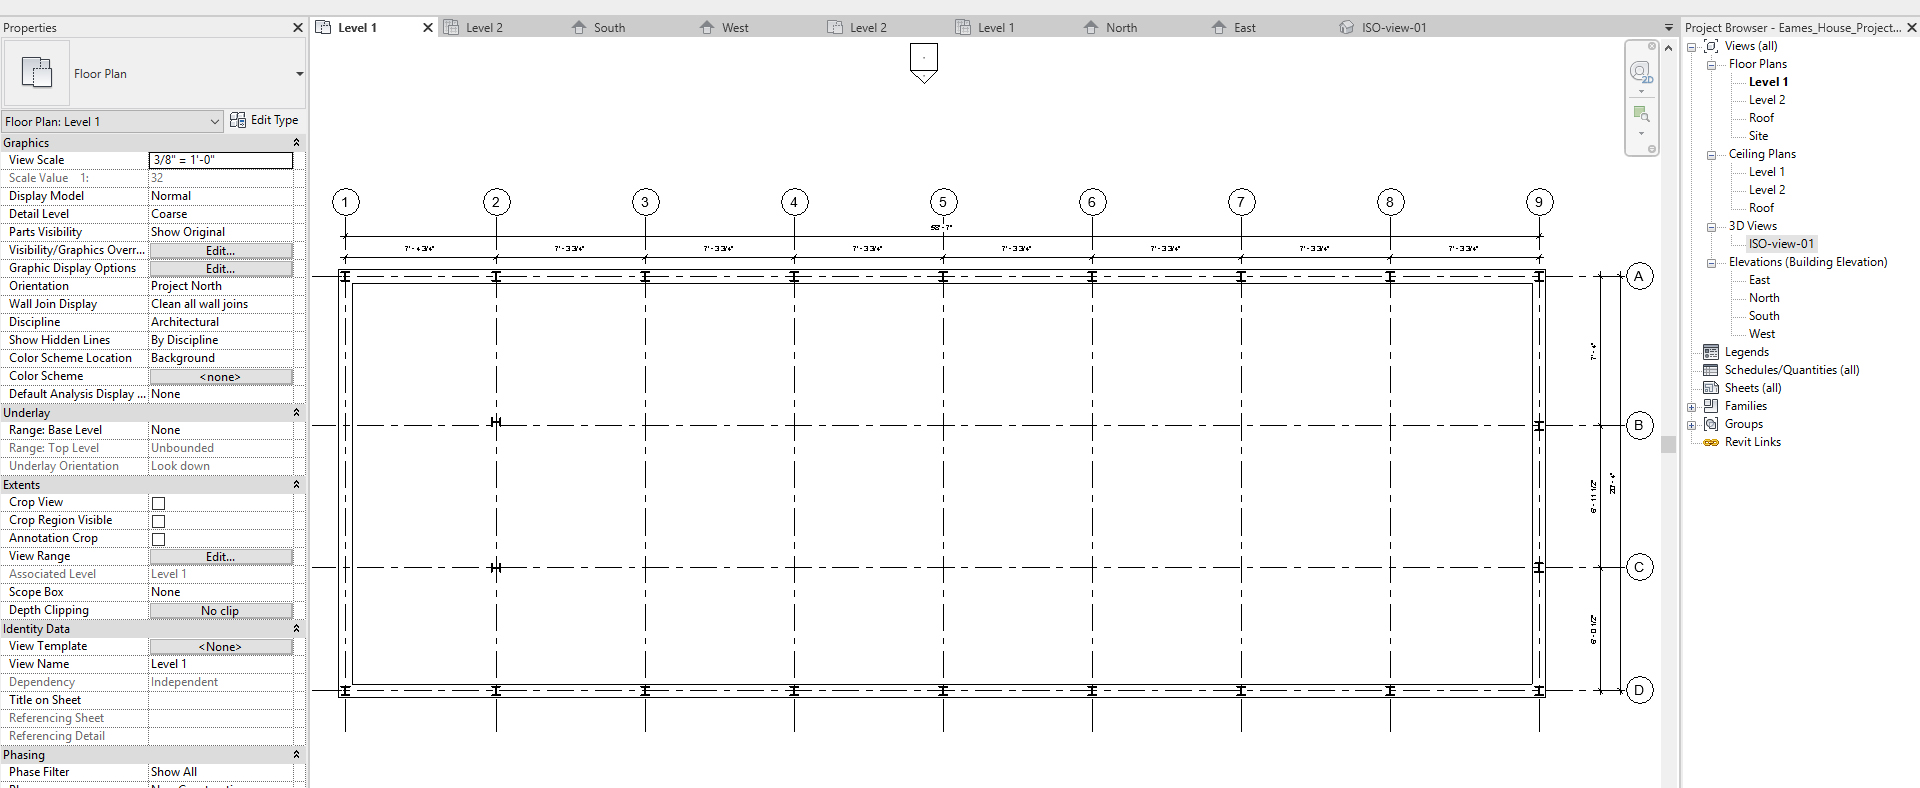 It shows the resulting image after adding columns.